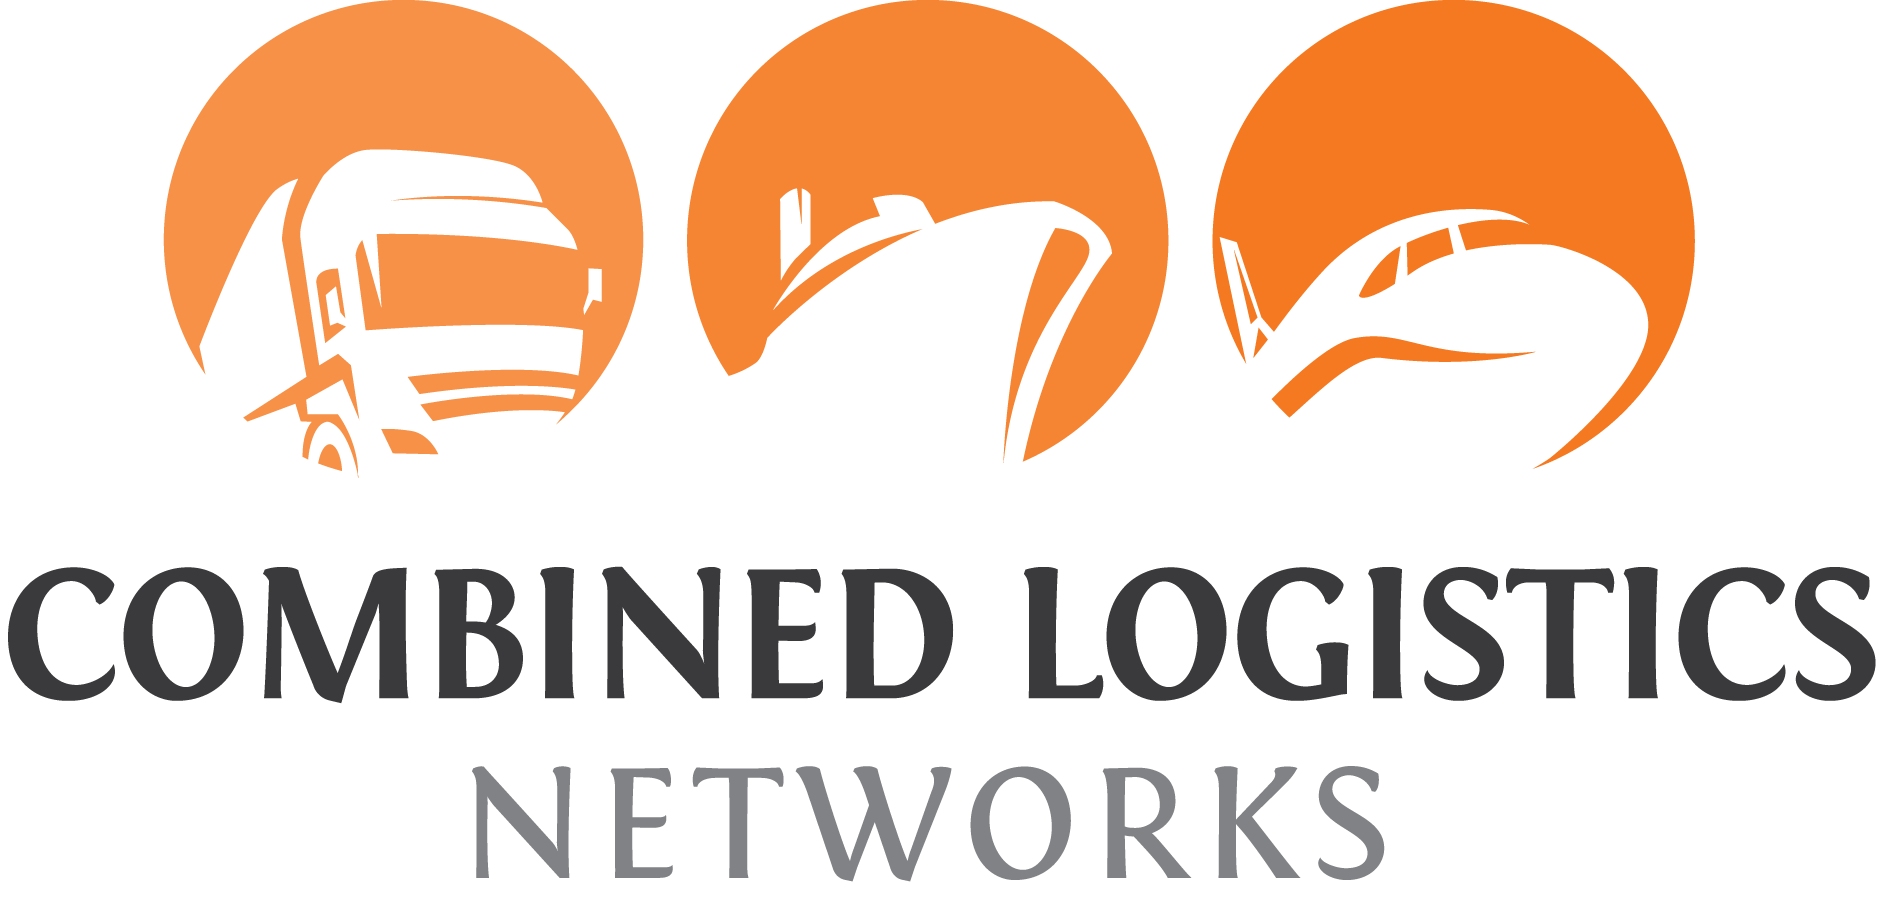 combined-logistics-networks (2)